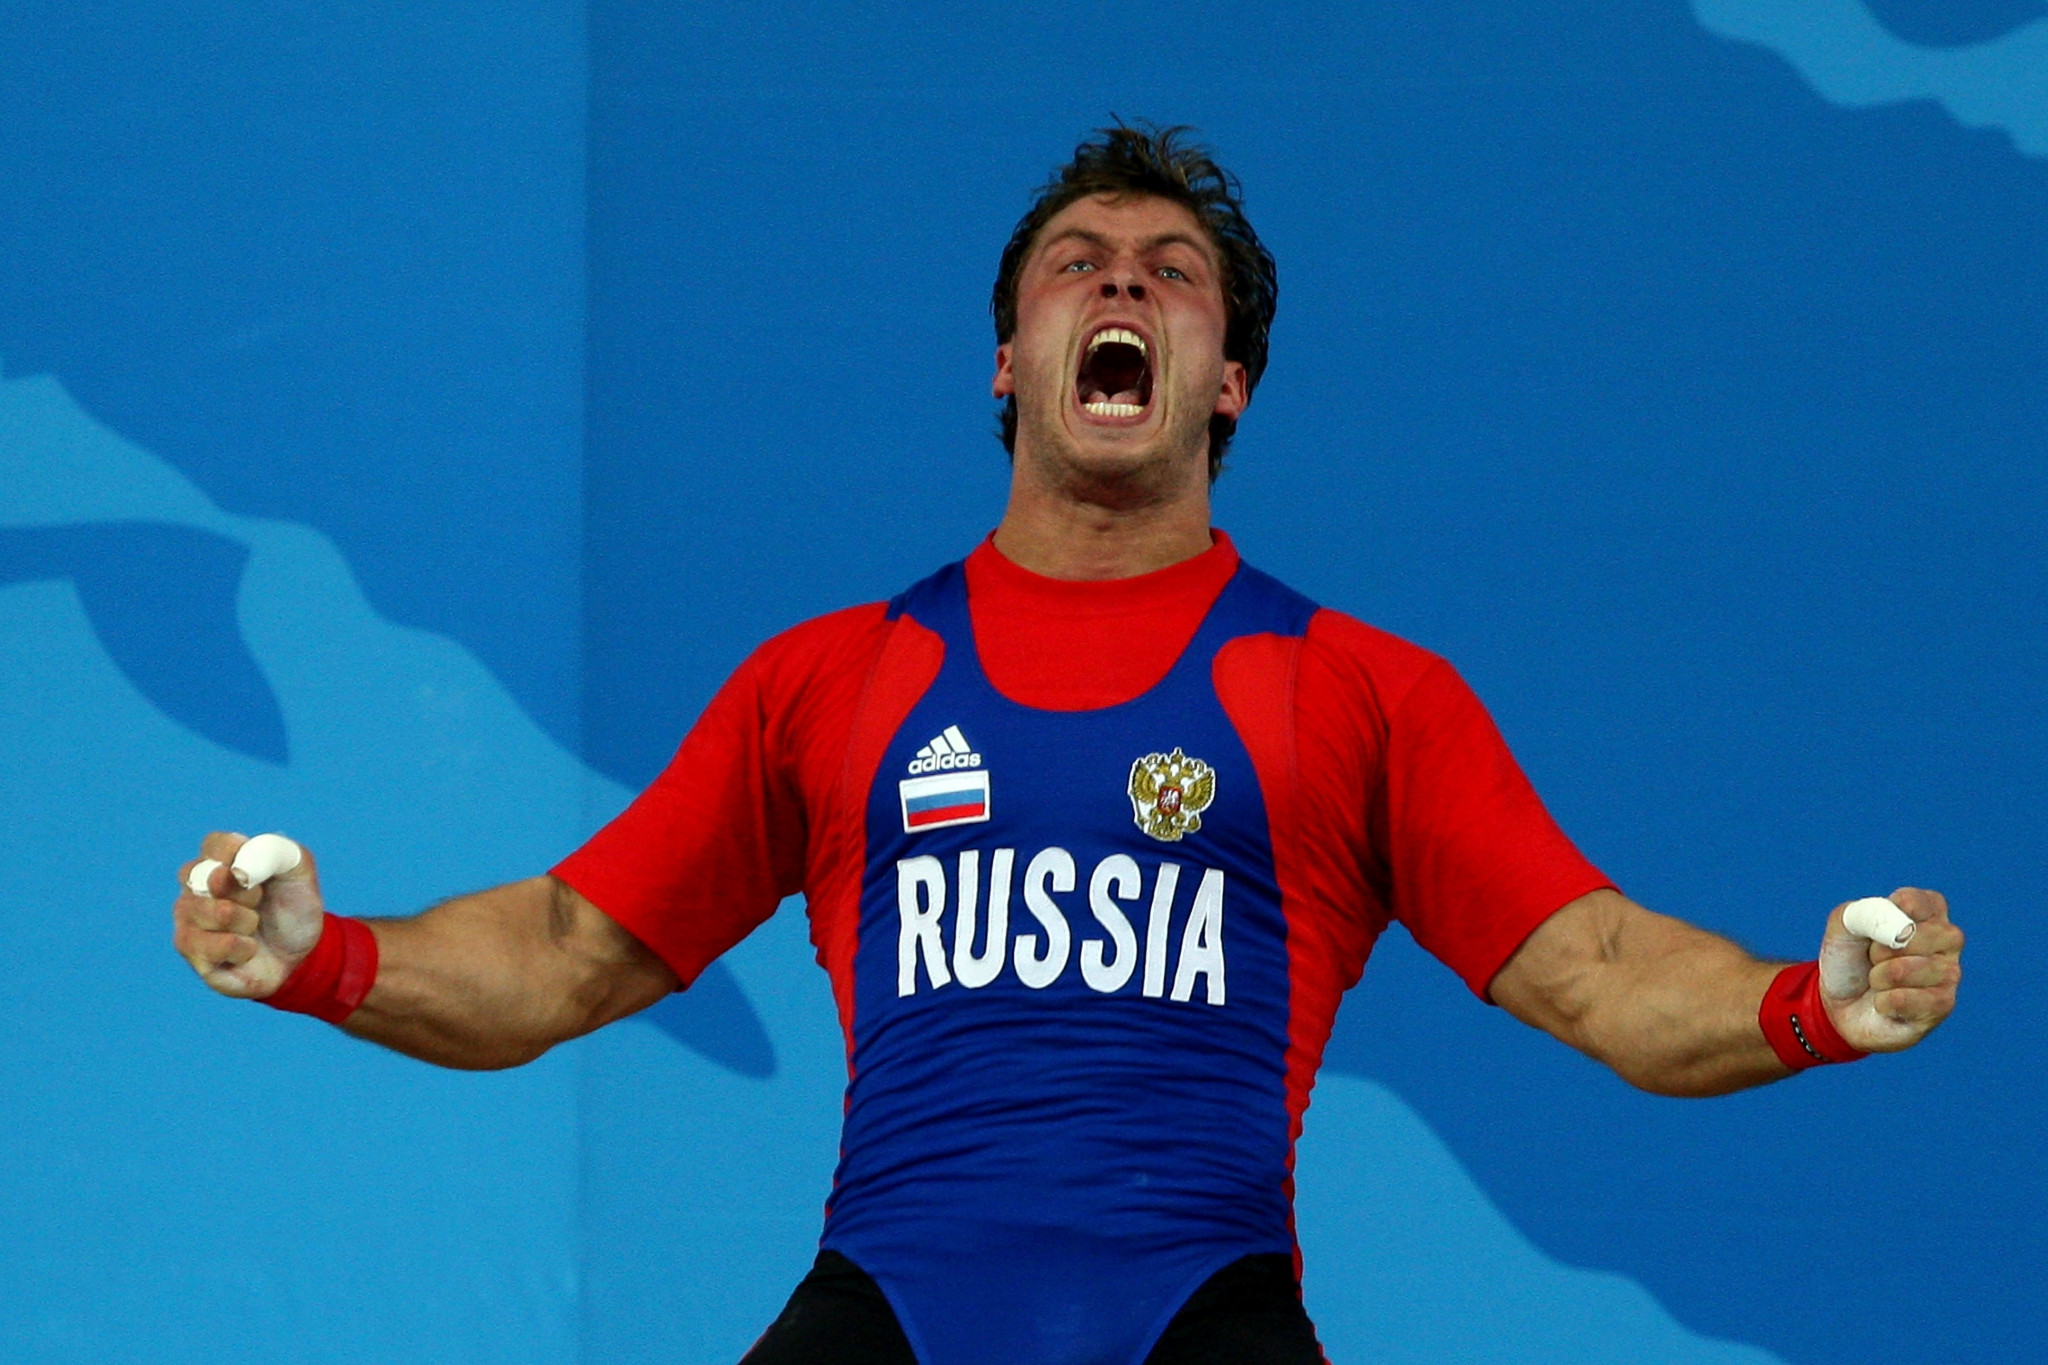 Exclusive: Olympic medallist Klokov reveals plan for weightlifting to have two leaders in Russia